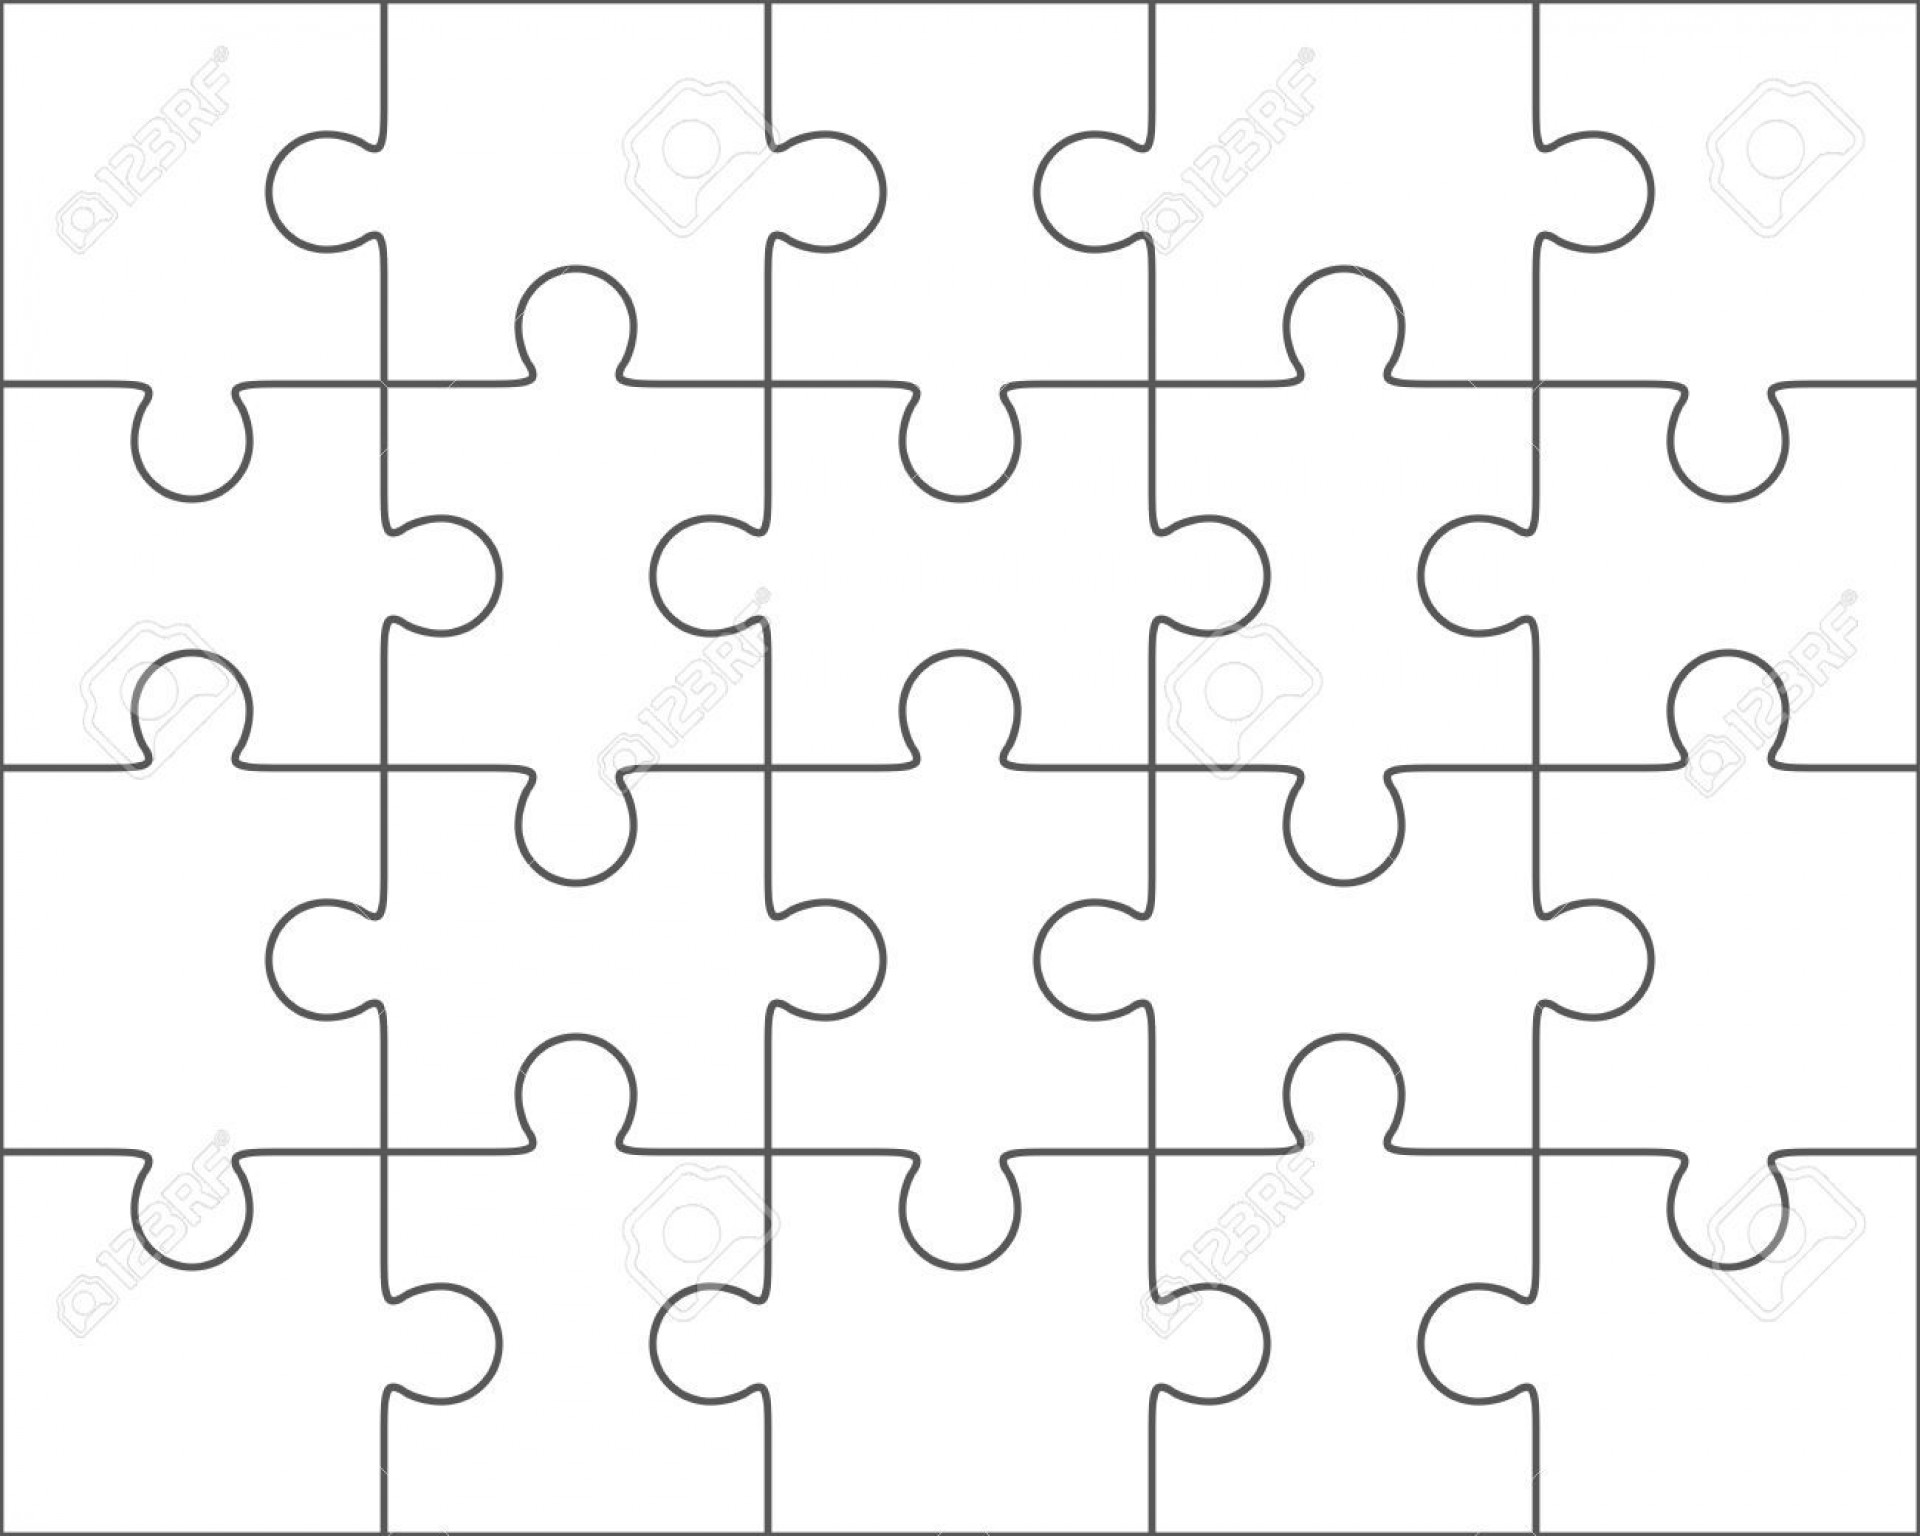 003 Rare Jig Saw Puzzle Template Idea  Printable Blank Jigsaw Vector Free Png1920